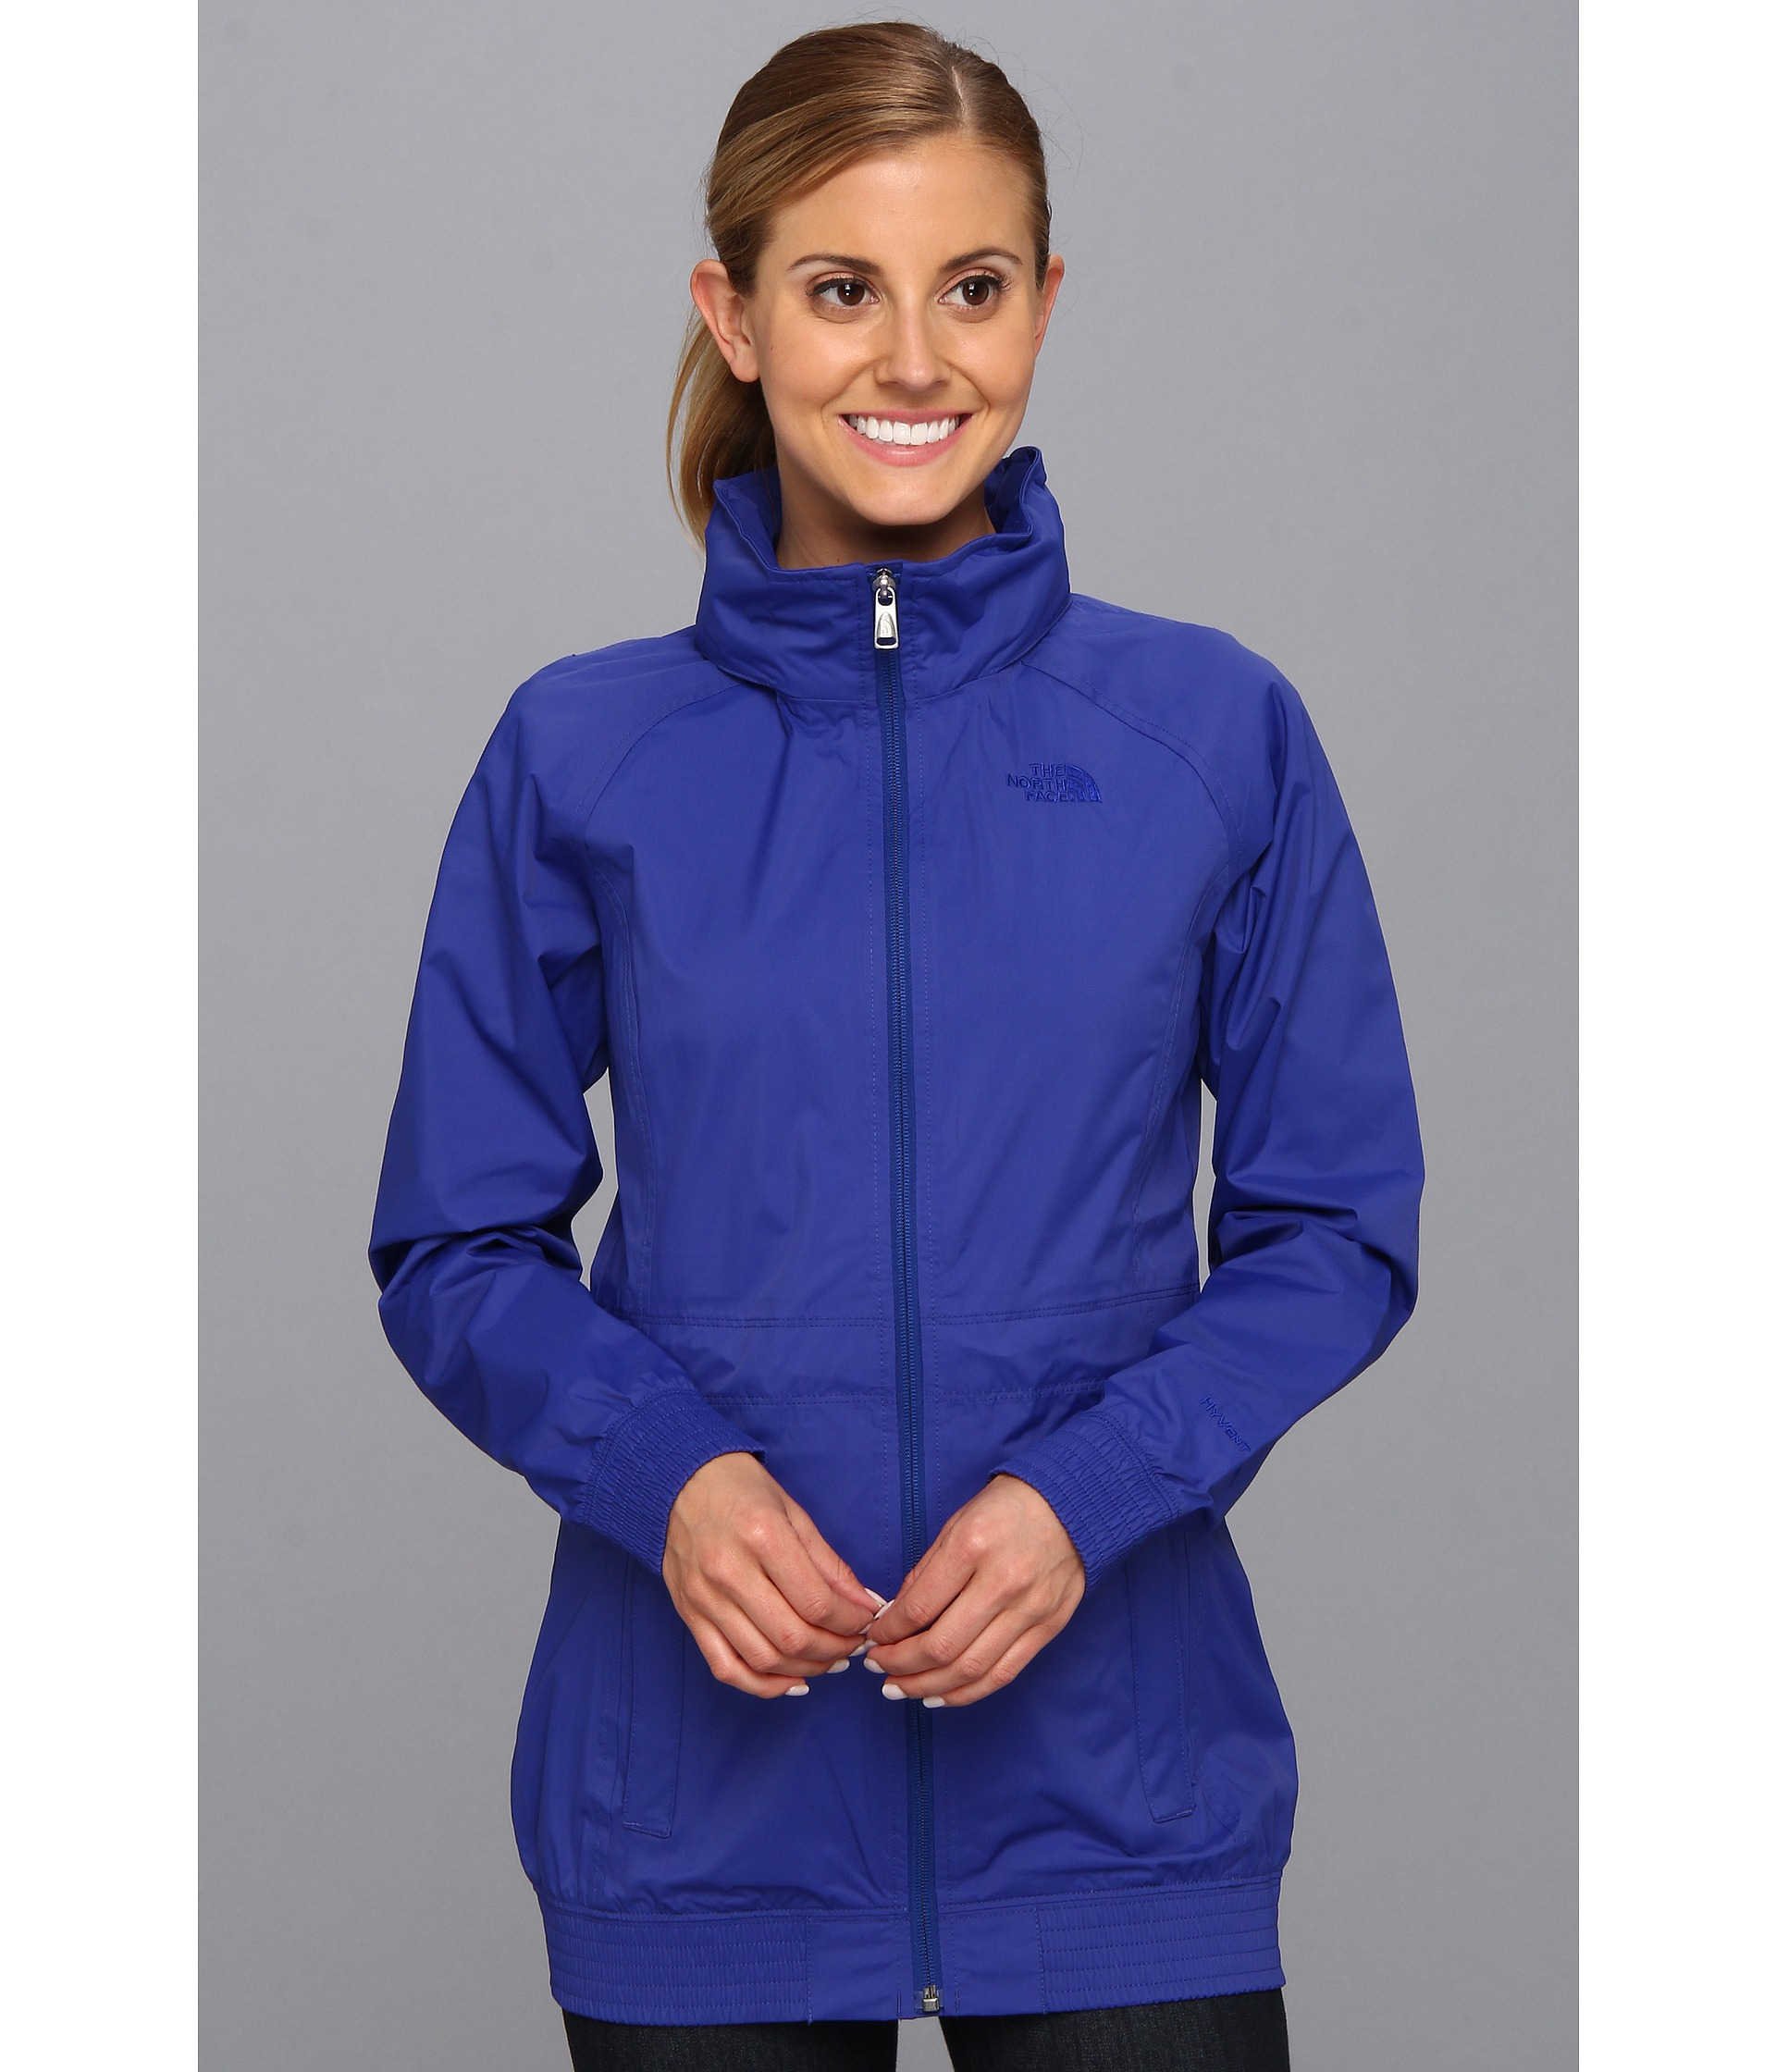 Waterproof Rain Jacket Women S Jacket To